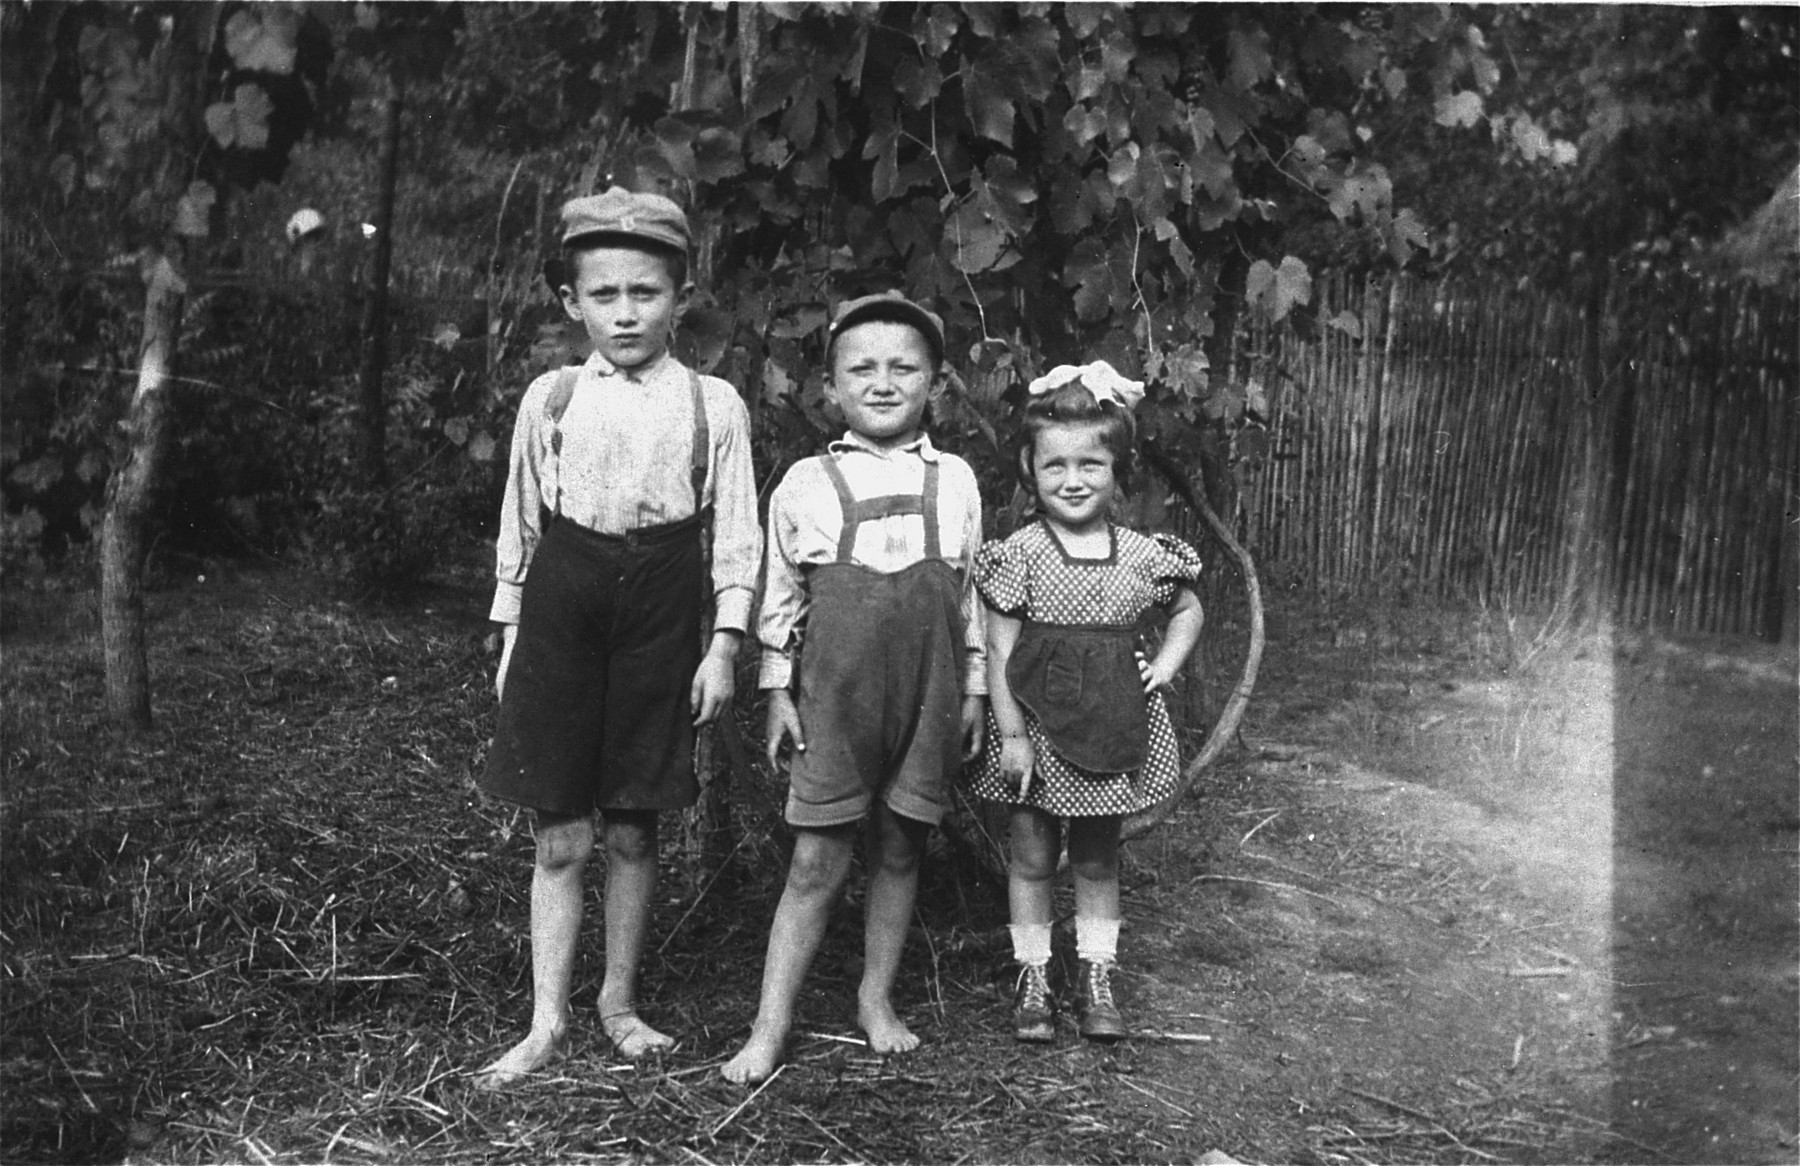 Three Jewish children pose outside in Veliki Palad.  Pictured are Shloimele, Moshe and Tova-Elka Fried, the children of Yehoshua and Jortse (Markovitz) Fried.  All three were deported and killed in Auschwitz.  The children are the cousins of donor, Edith Polon.